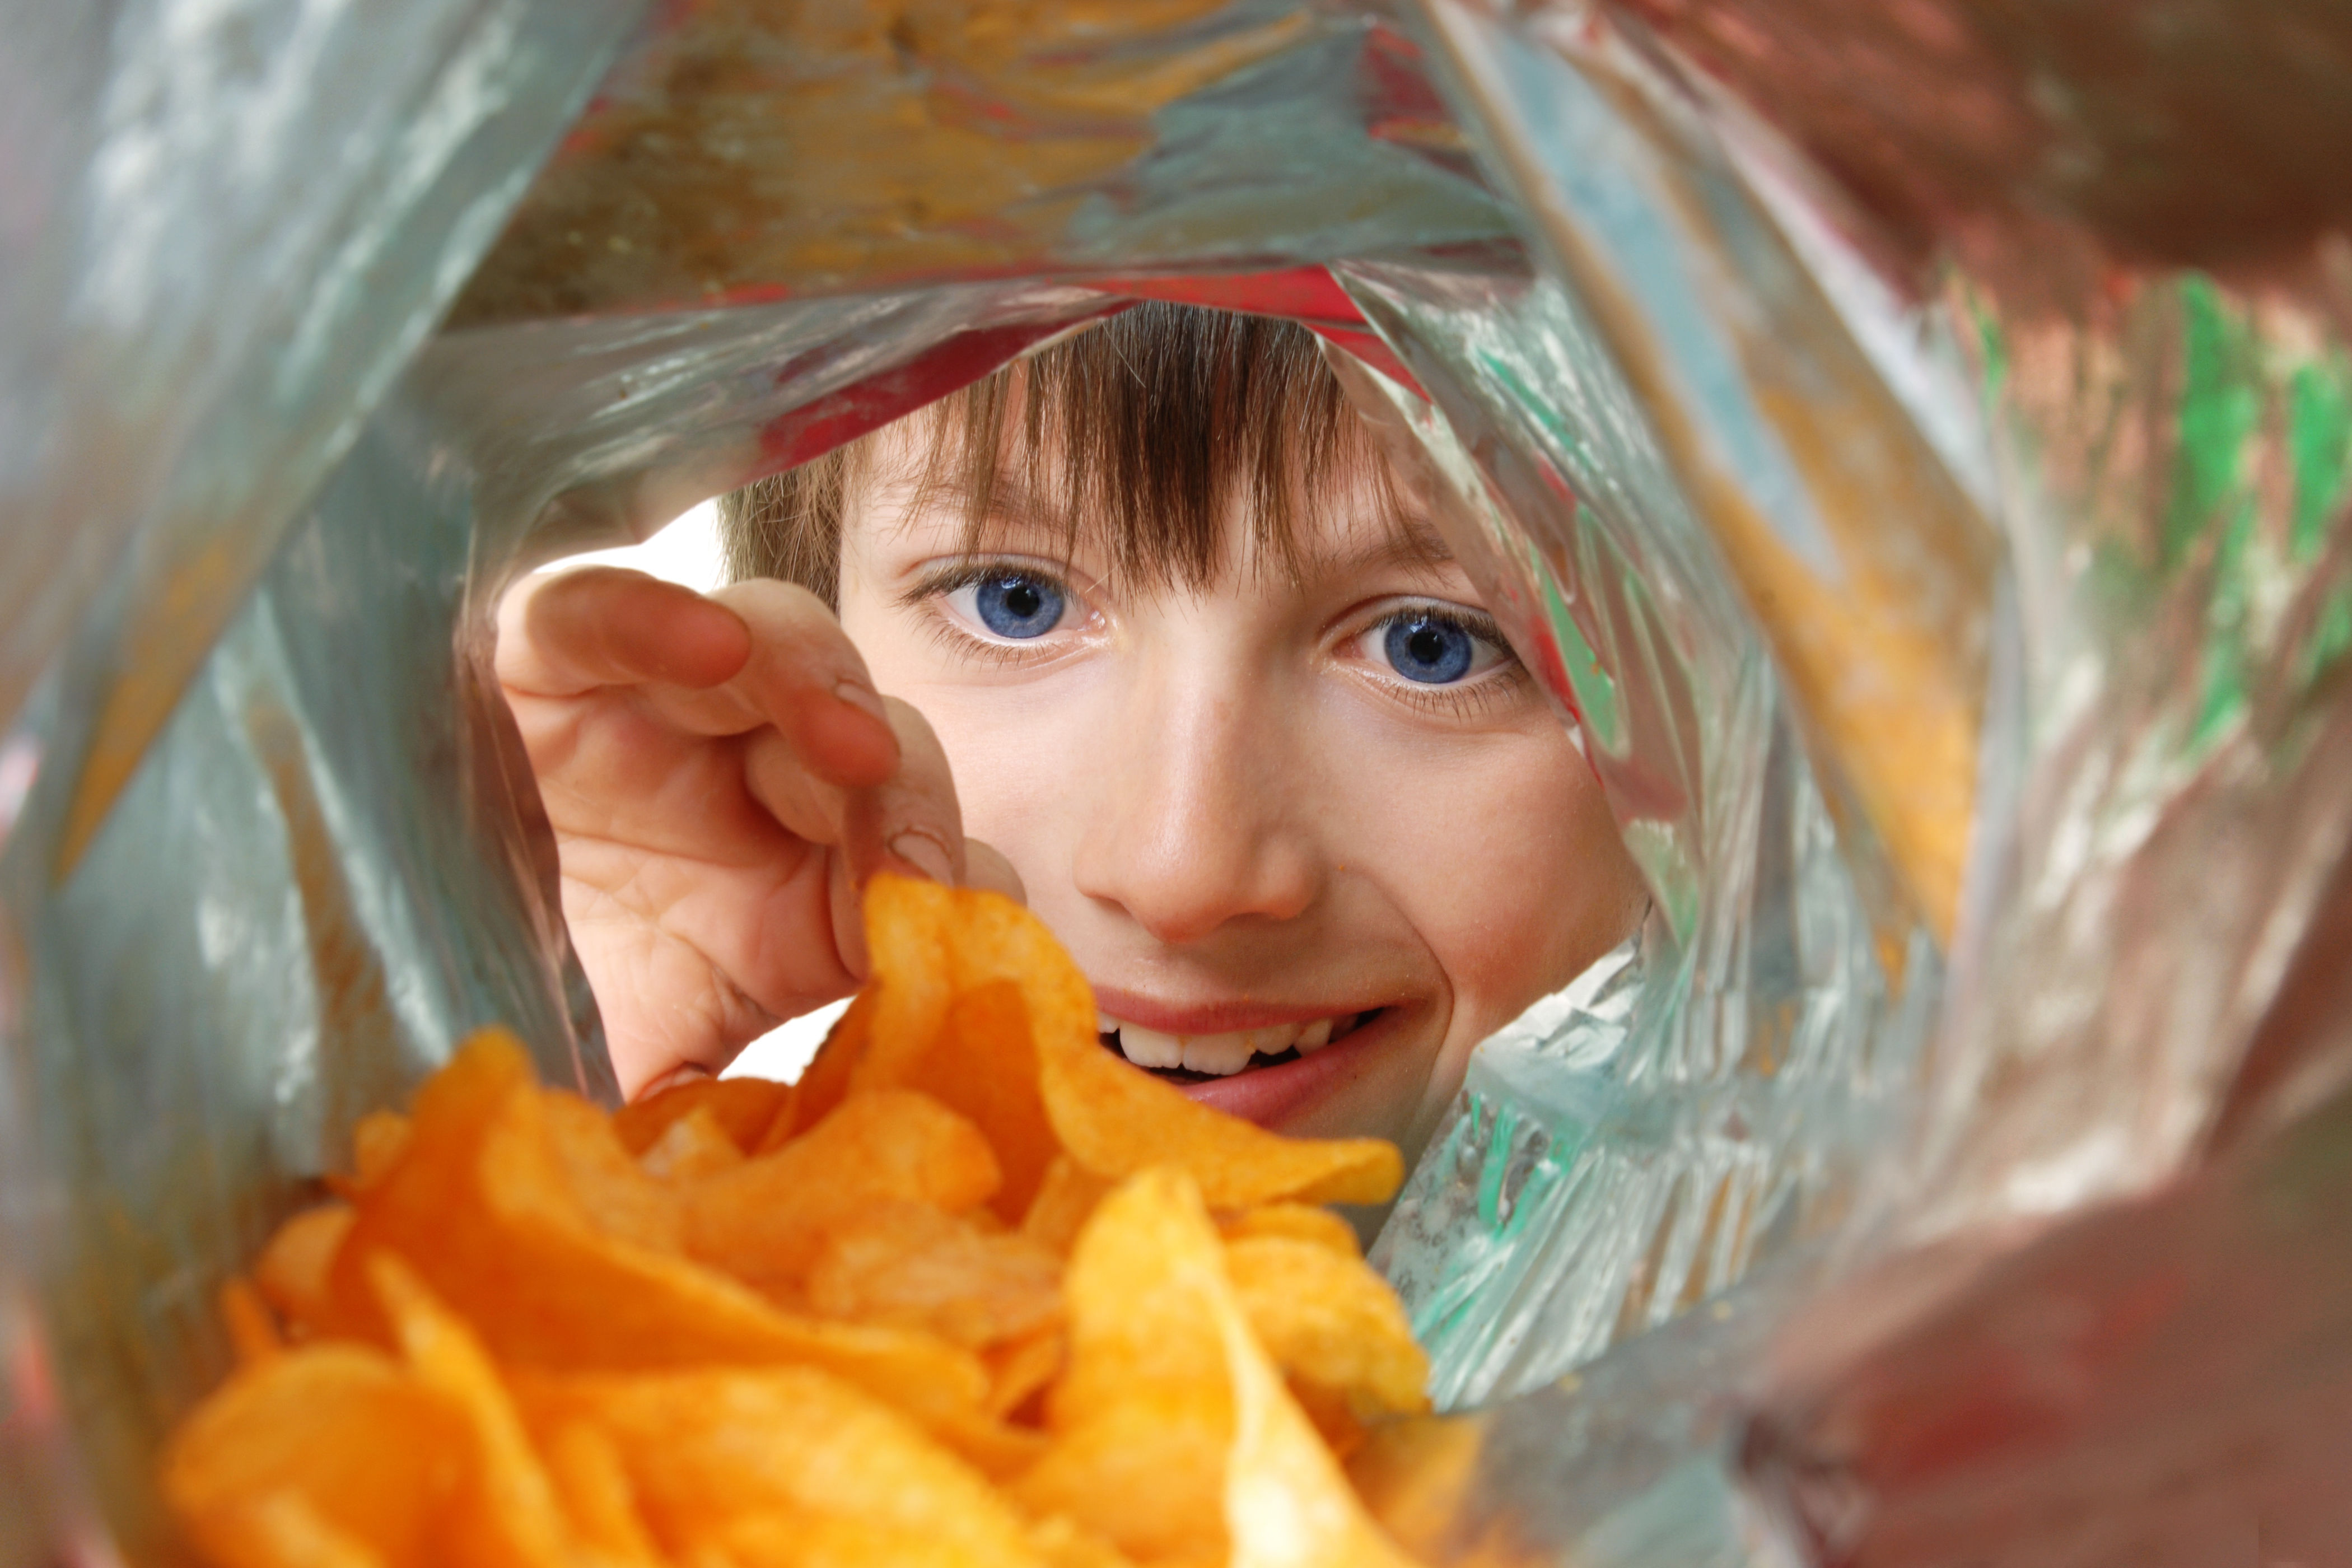 The Reason There's So Much Air in Each Bag of Potato Chips